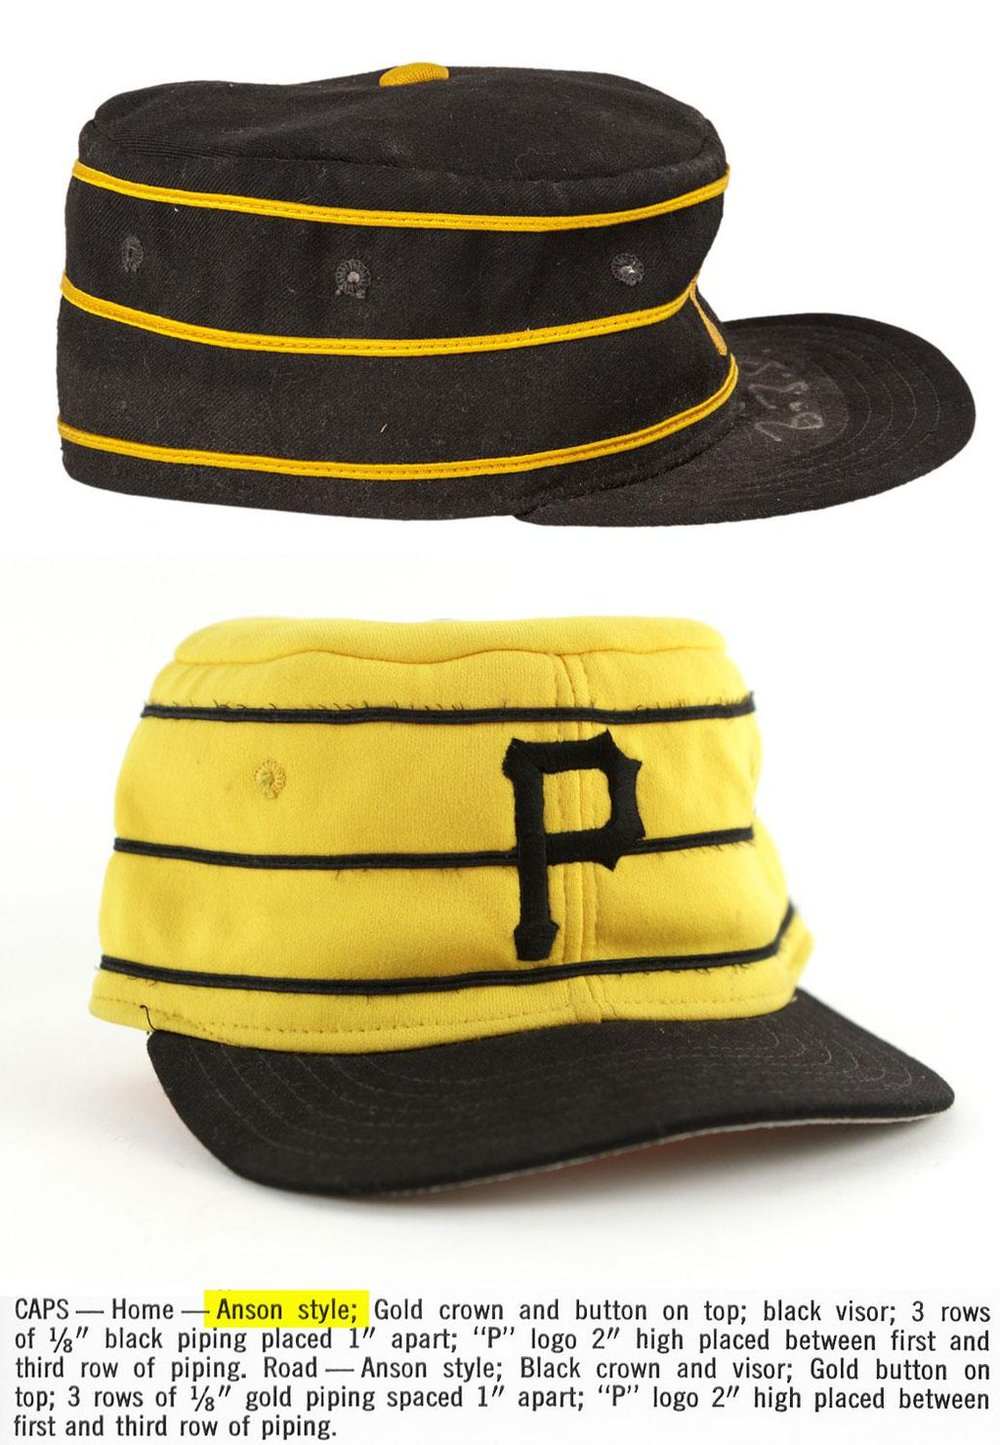 Design specs for the pillbox style caps worn by the Pittsburgh Pirates in the 1970s.